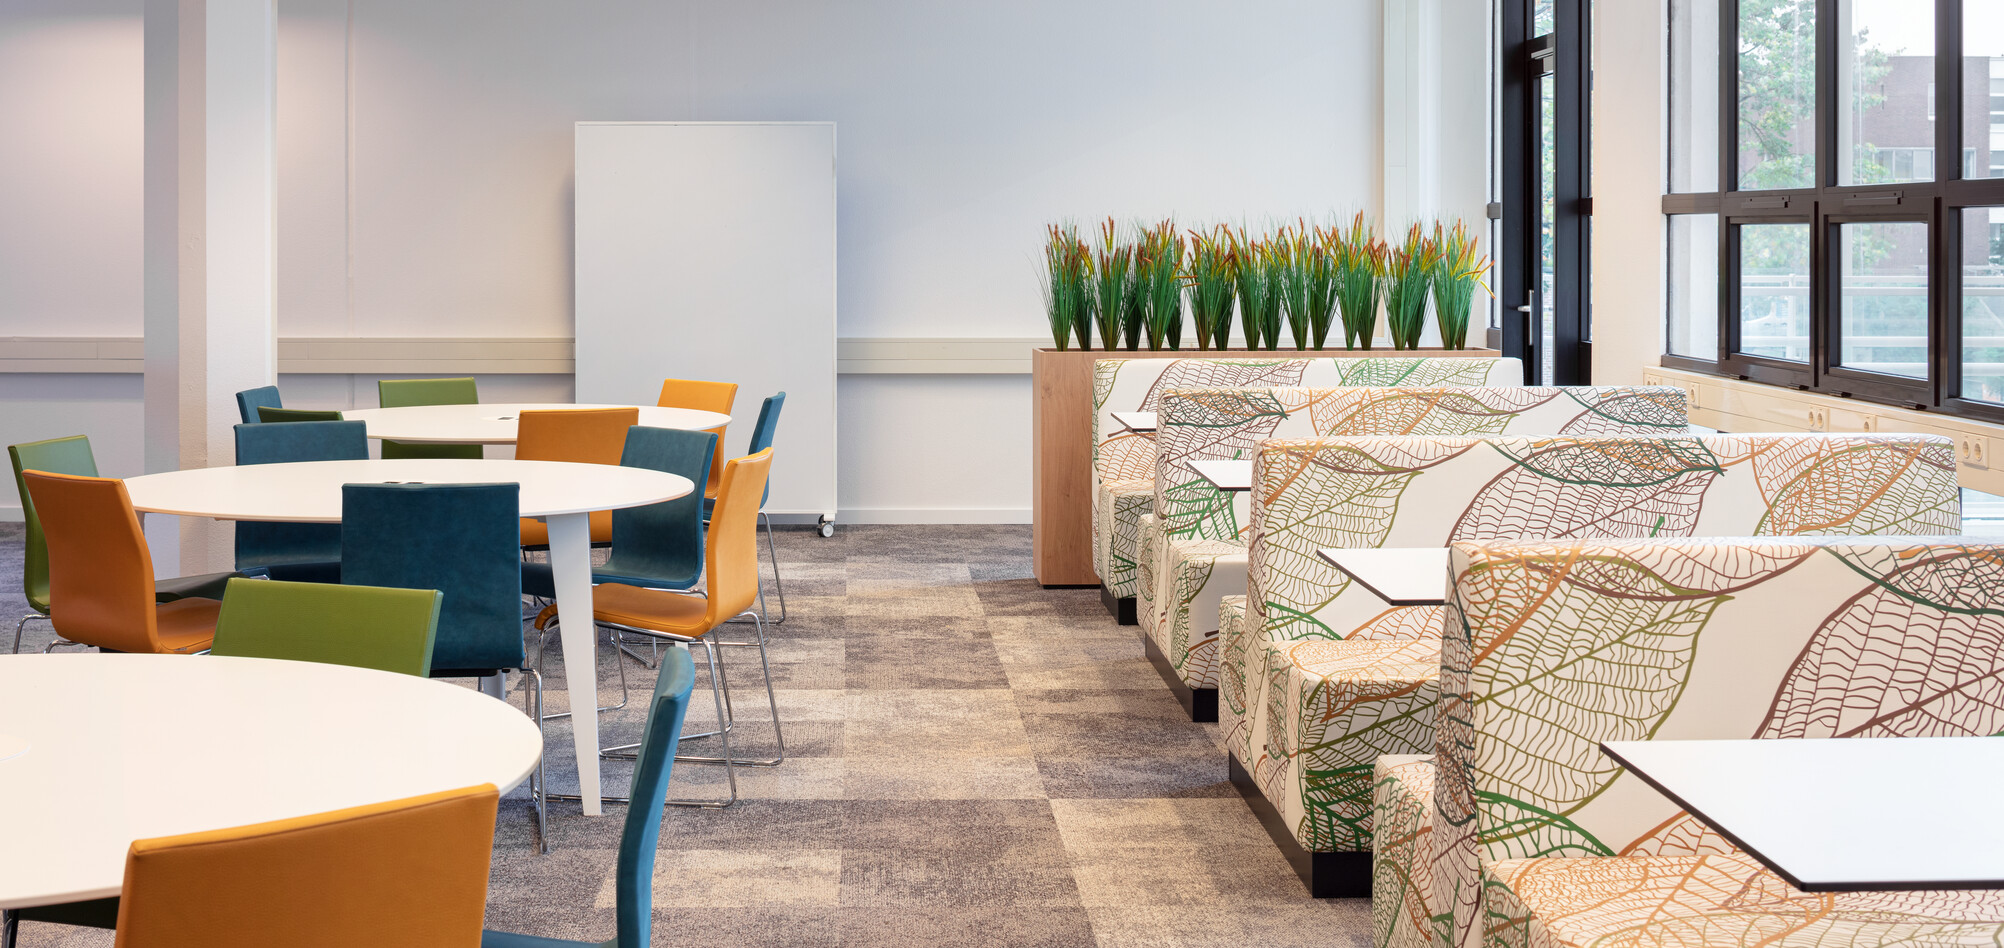 Royal Ahrend education project Avans University of Applied Sciences in Roosendaal 08